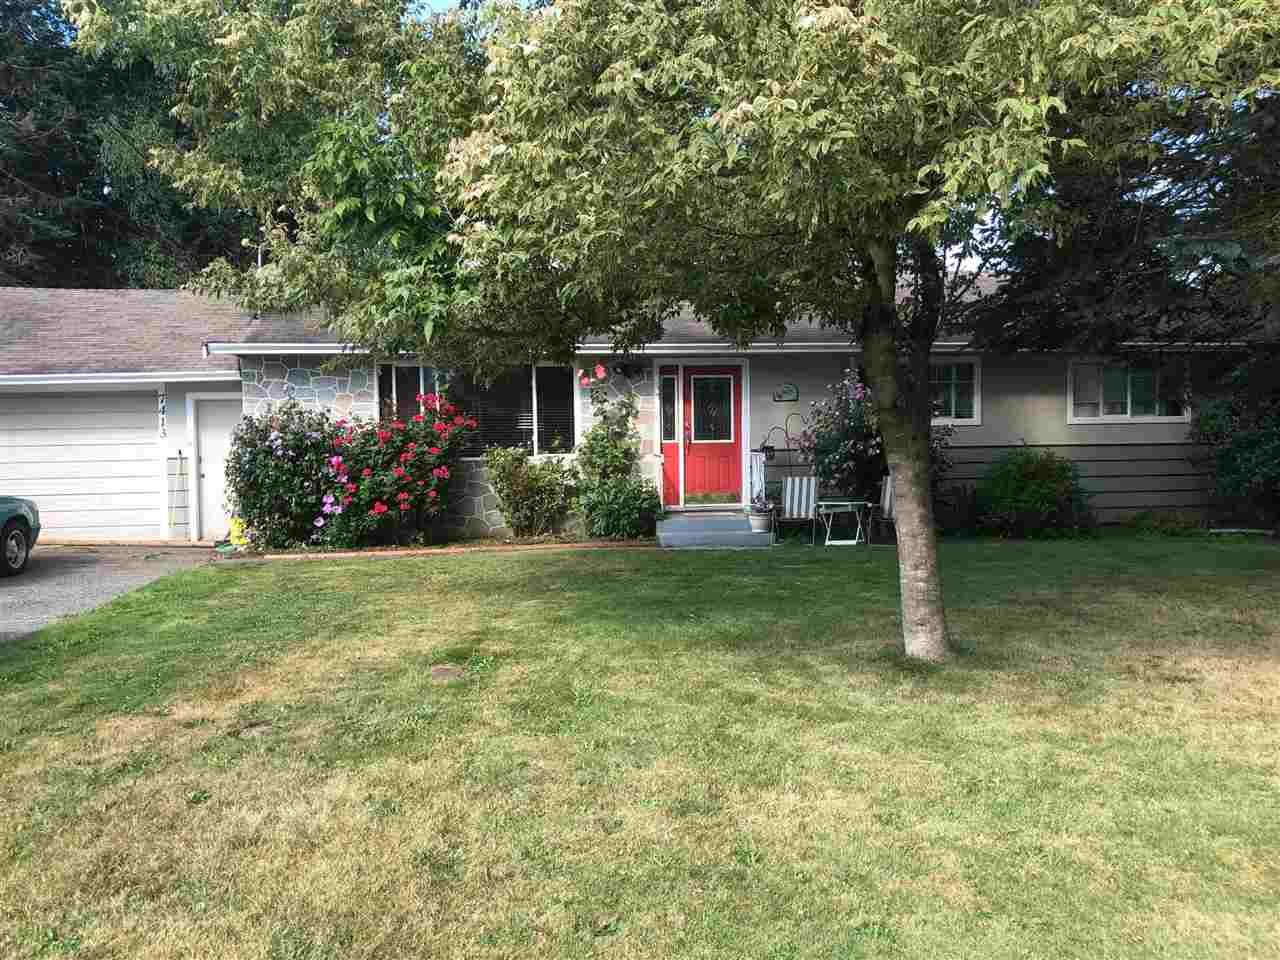 Main Photo: 7413 LEARY Crescent in Sardis: Sardis West Vedder Rd House for sale : MLS®# R2397049